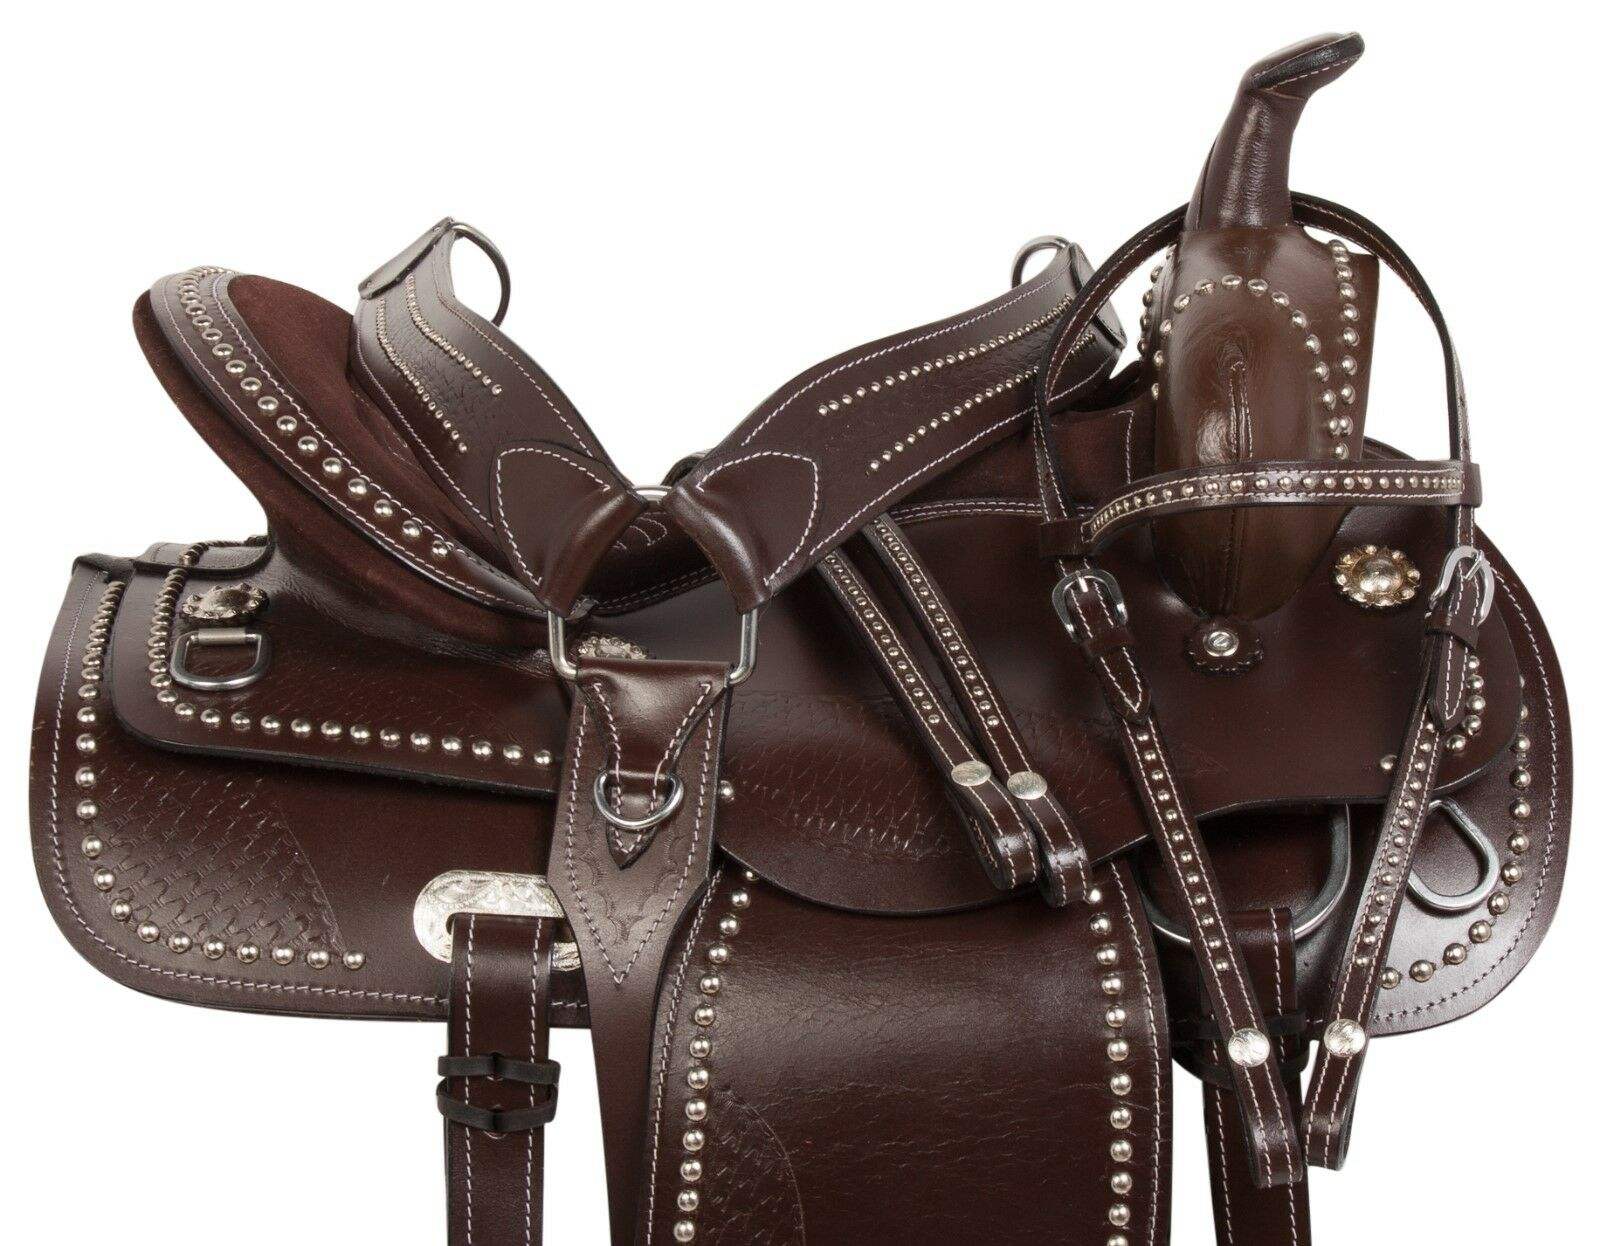 16 GAITED braun LIGHT weißht COMFY WESTERN PLEASURE TRAIL HOHER SADDLE